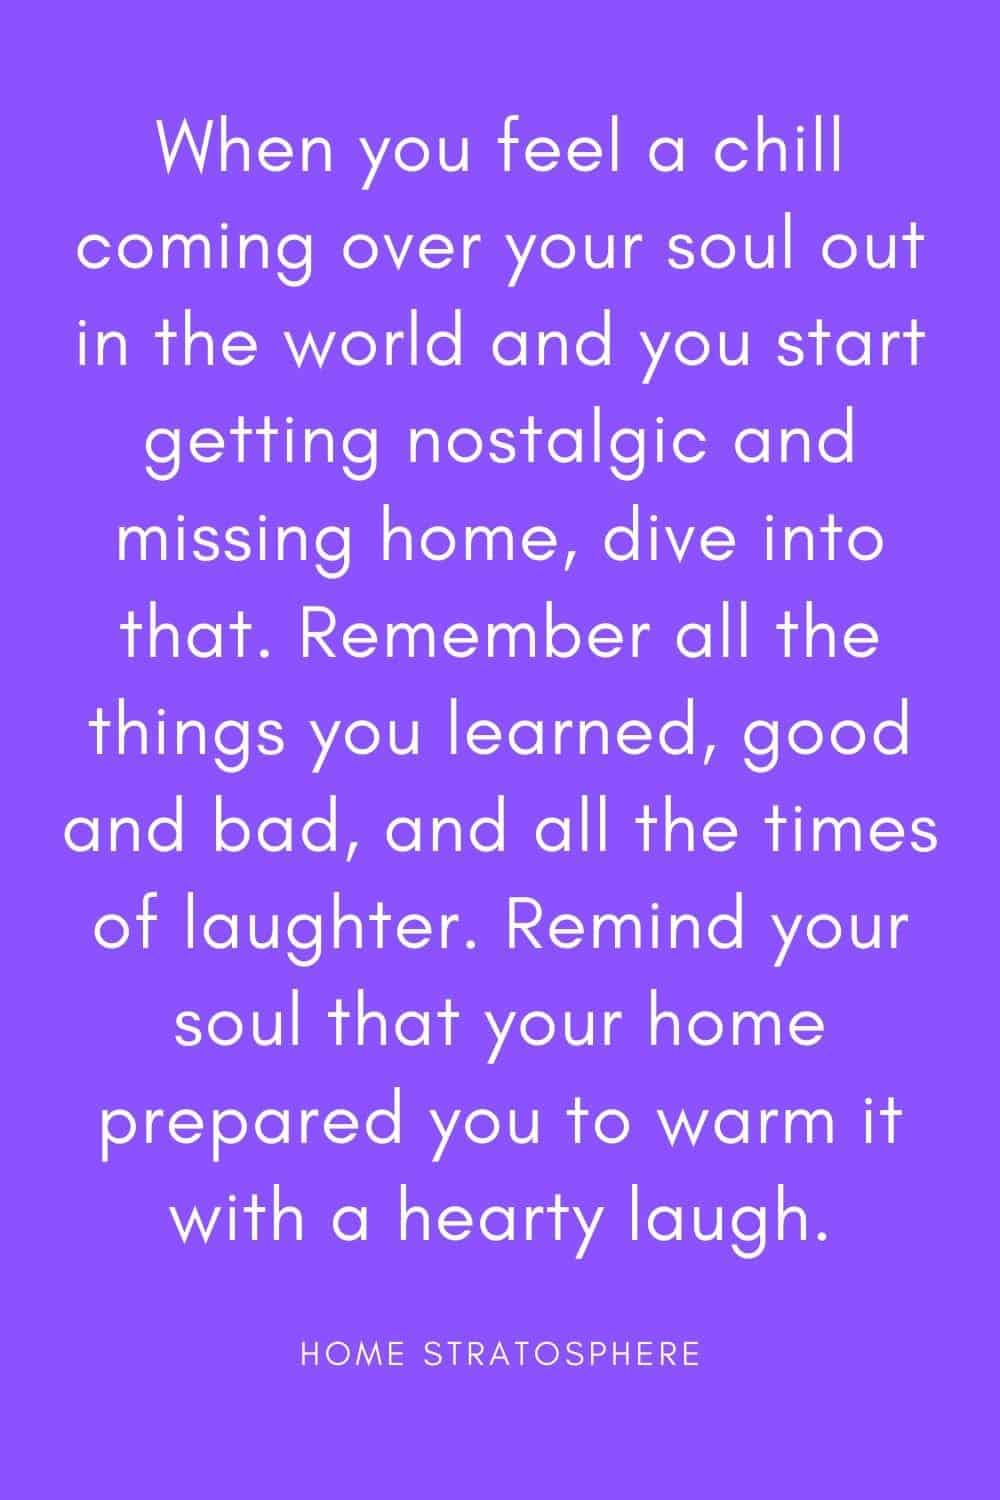 """When you feel a chill coming over your soul out in the world and you start getting nostalgic and missing home, dive into that. Remember all the things you learned, good and bad, and all the times of laughter. Remind your soul that your home prepared you to warm it with a hearty laugh."""